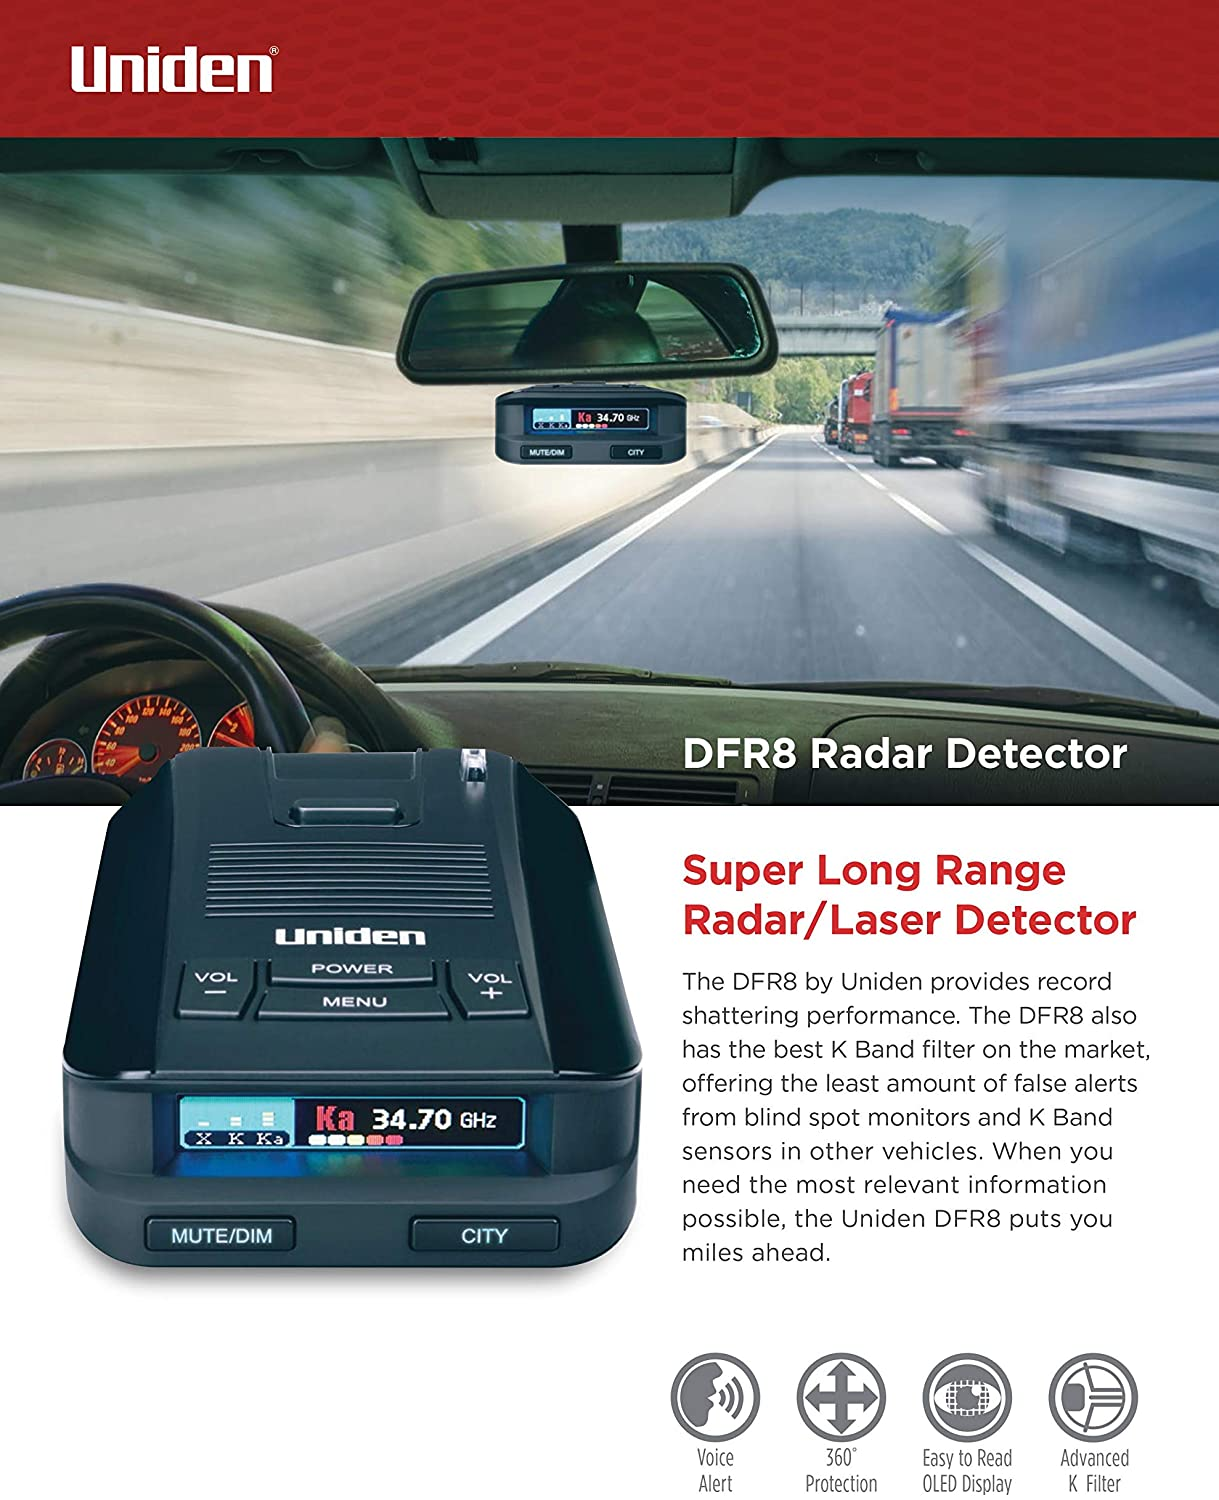 Uniden DFR8 used in a car and a text below the image detailing the radar detector's strengths